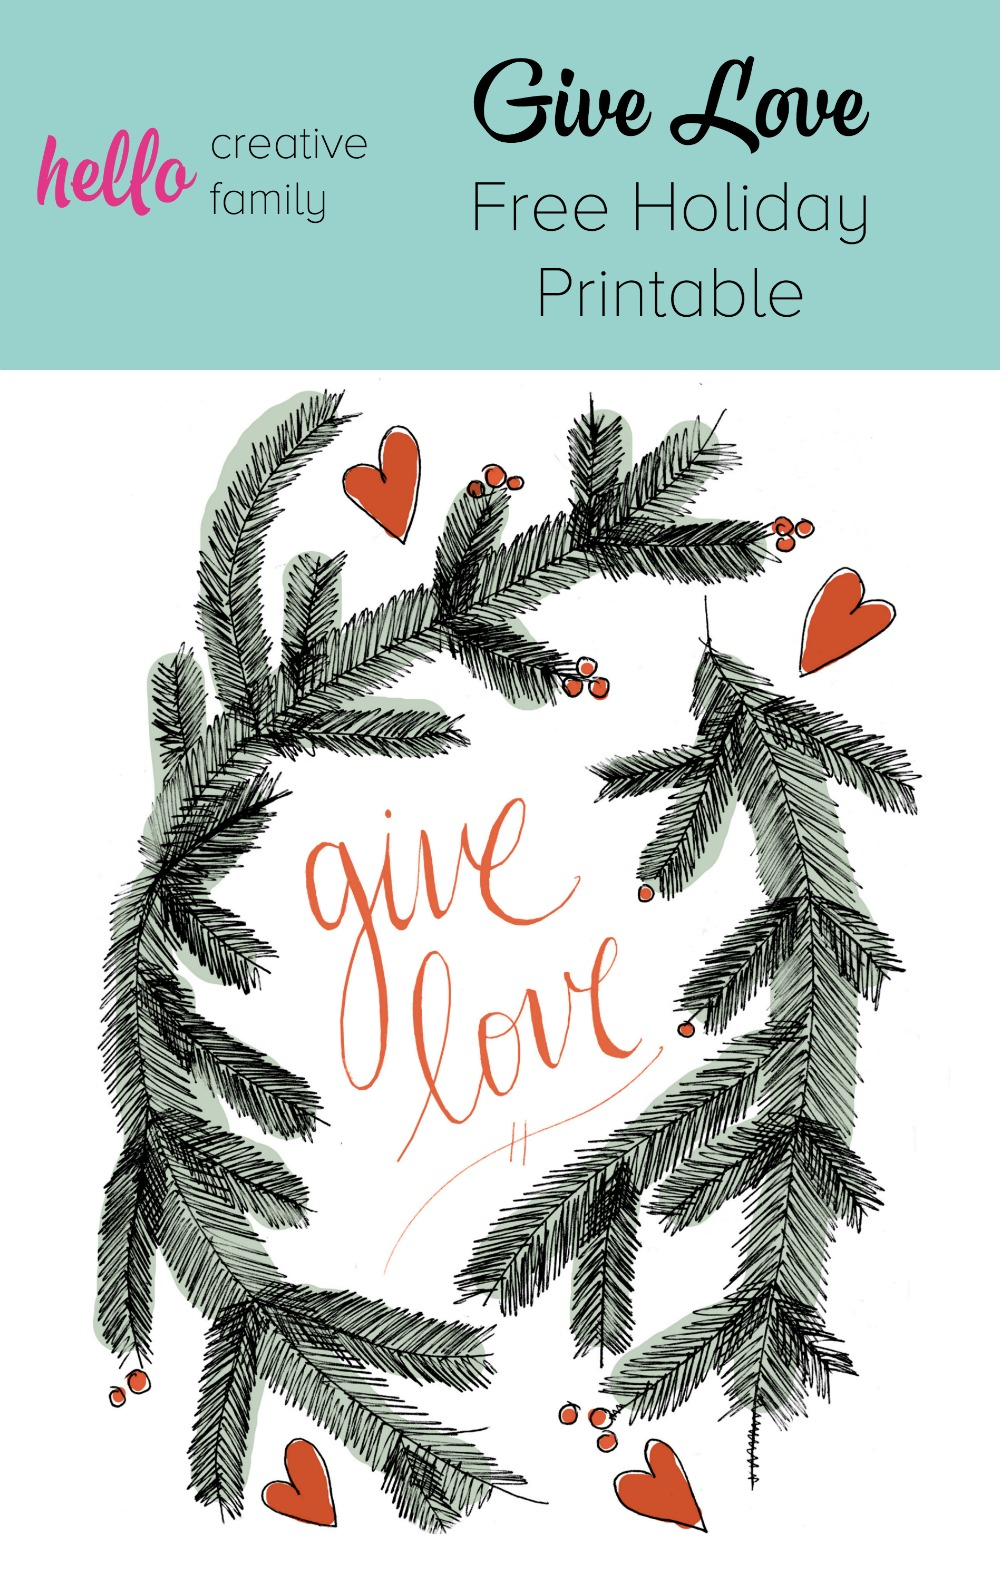 Give love. Give the gift of handmade this holiday season! Check out Hello Creative Family's Give Love Free Holiday Printable. Perfect for decorating a holiday mantel or sending as a Christmas card.